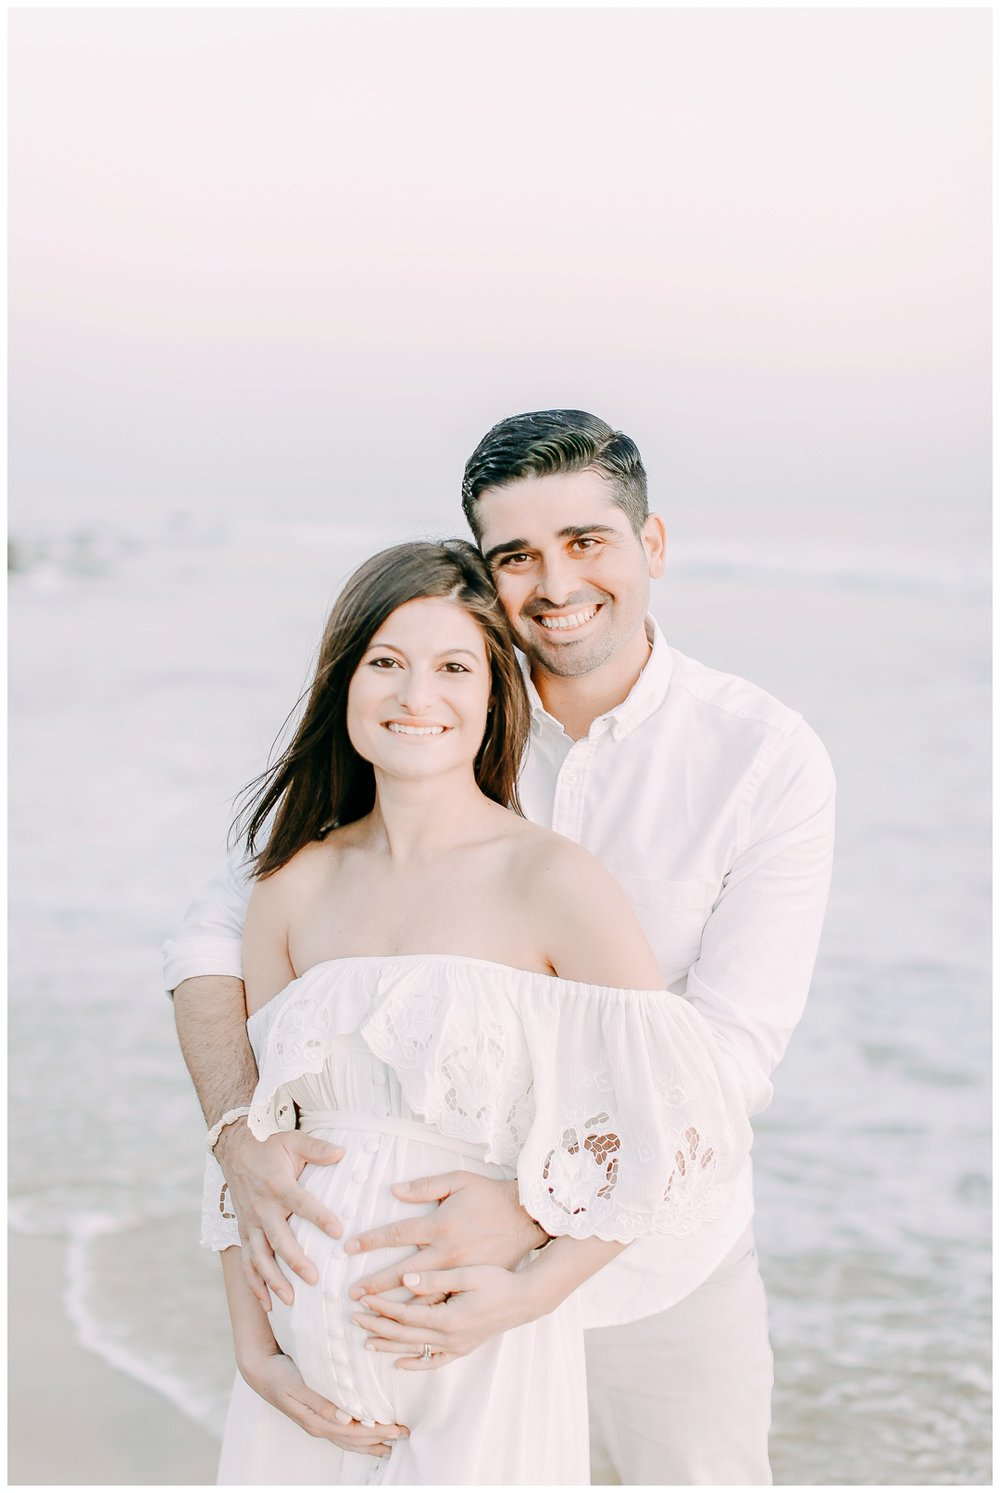 Crystal-Cove-State-Beach-Maternity-Session-Crystal-Cove-Newport-Beach-Maternity-Photographer-Crystal-Cove-Session-Cori-Kleckner-Photography-Orange-County-Maternity-Family-Photos-Session-_0890.jpg